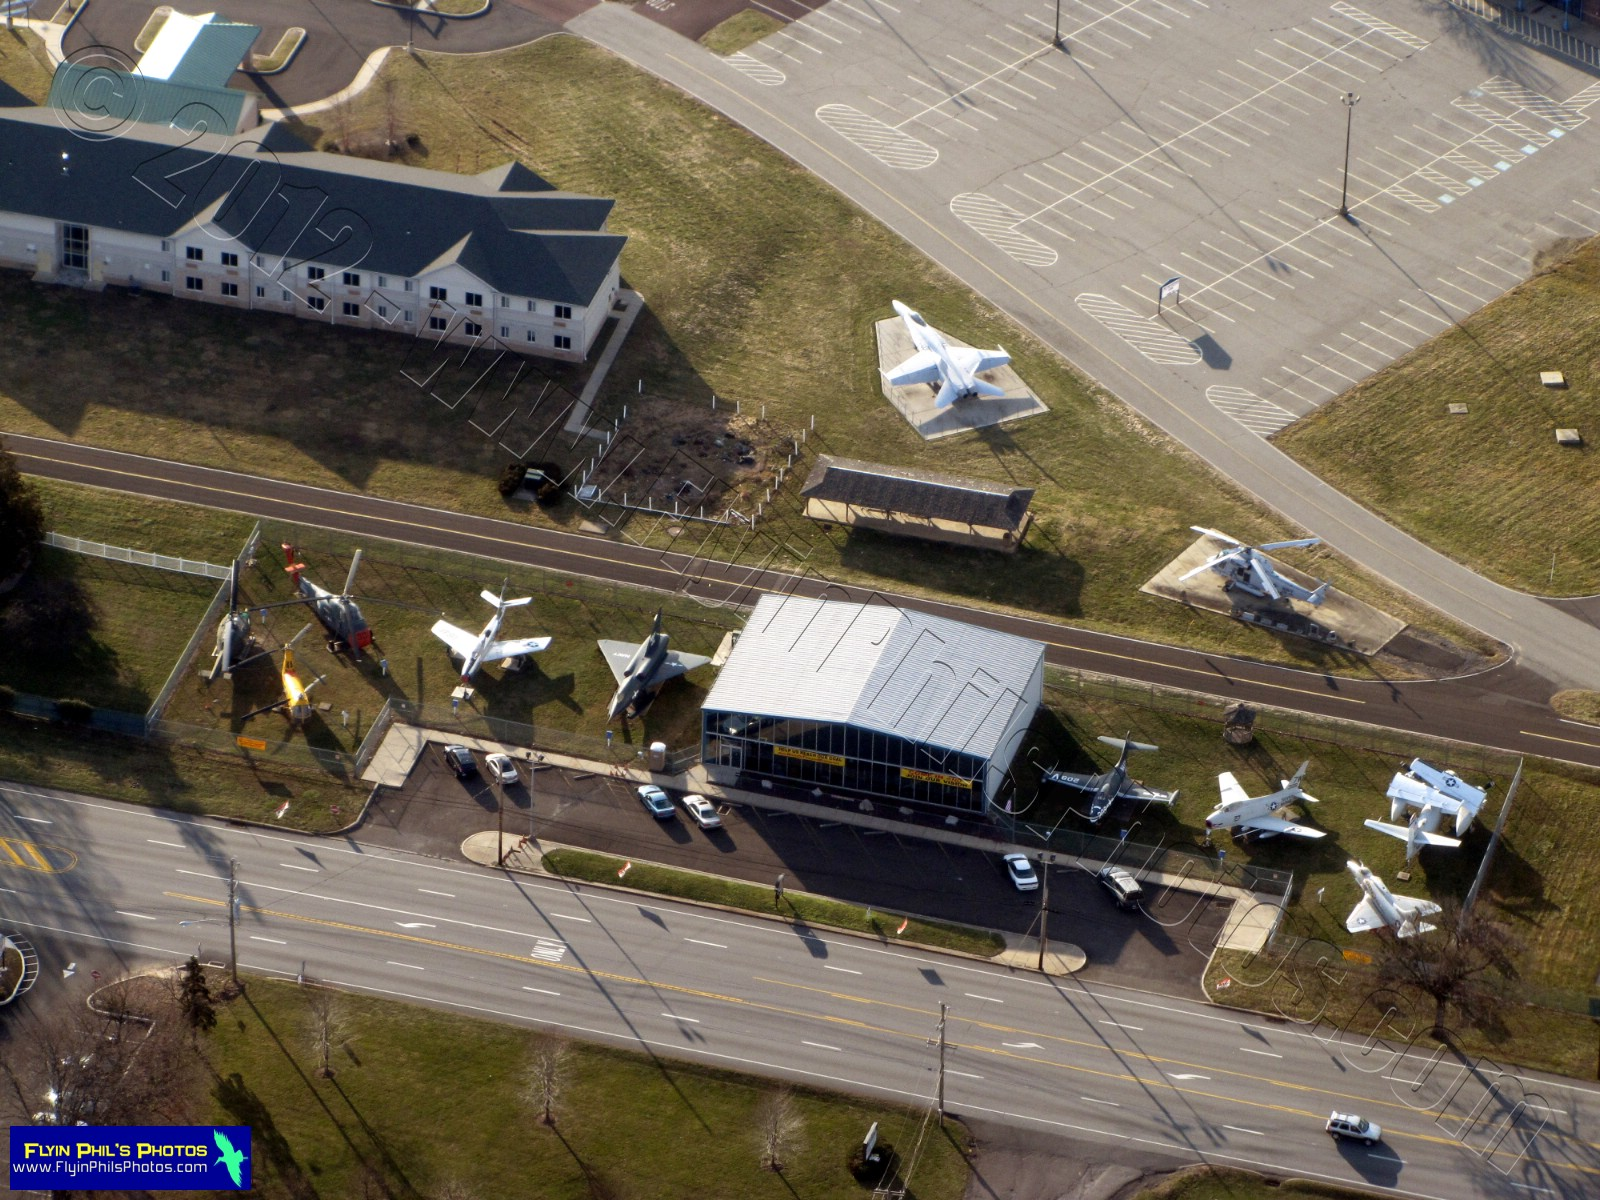 Highlights from my most Recent Flight...: From a Flight on Sunday ...